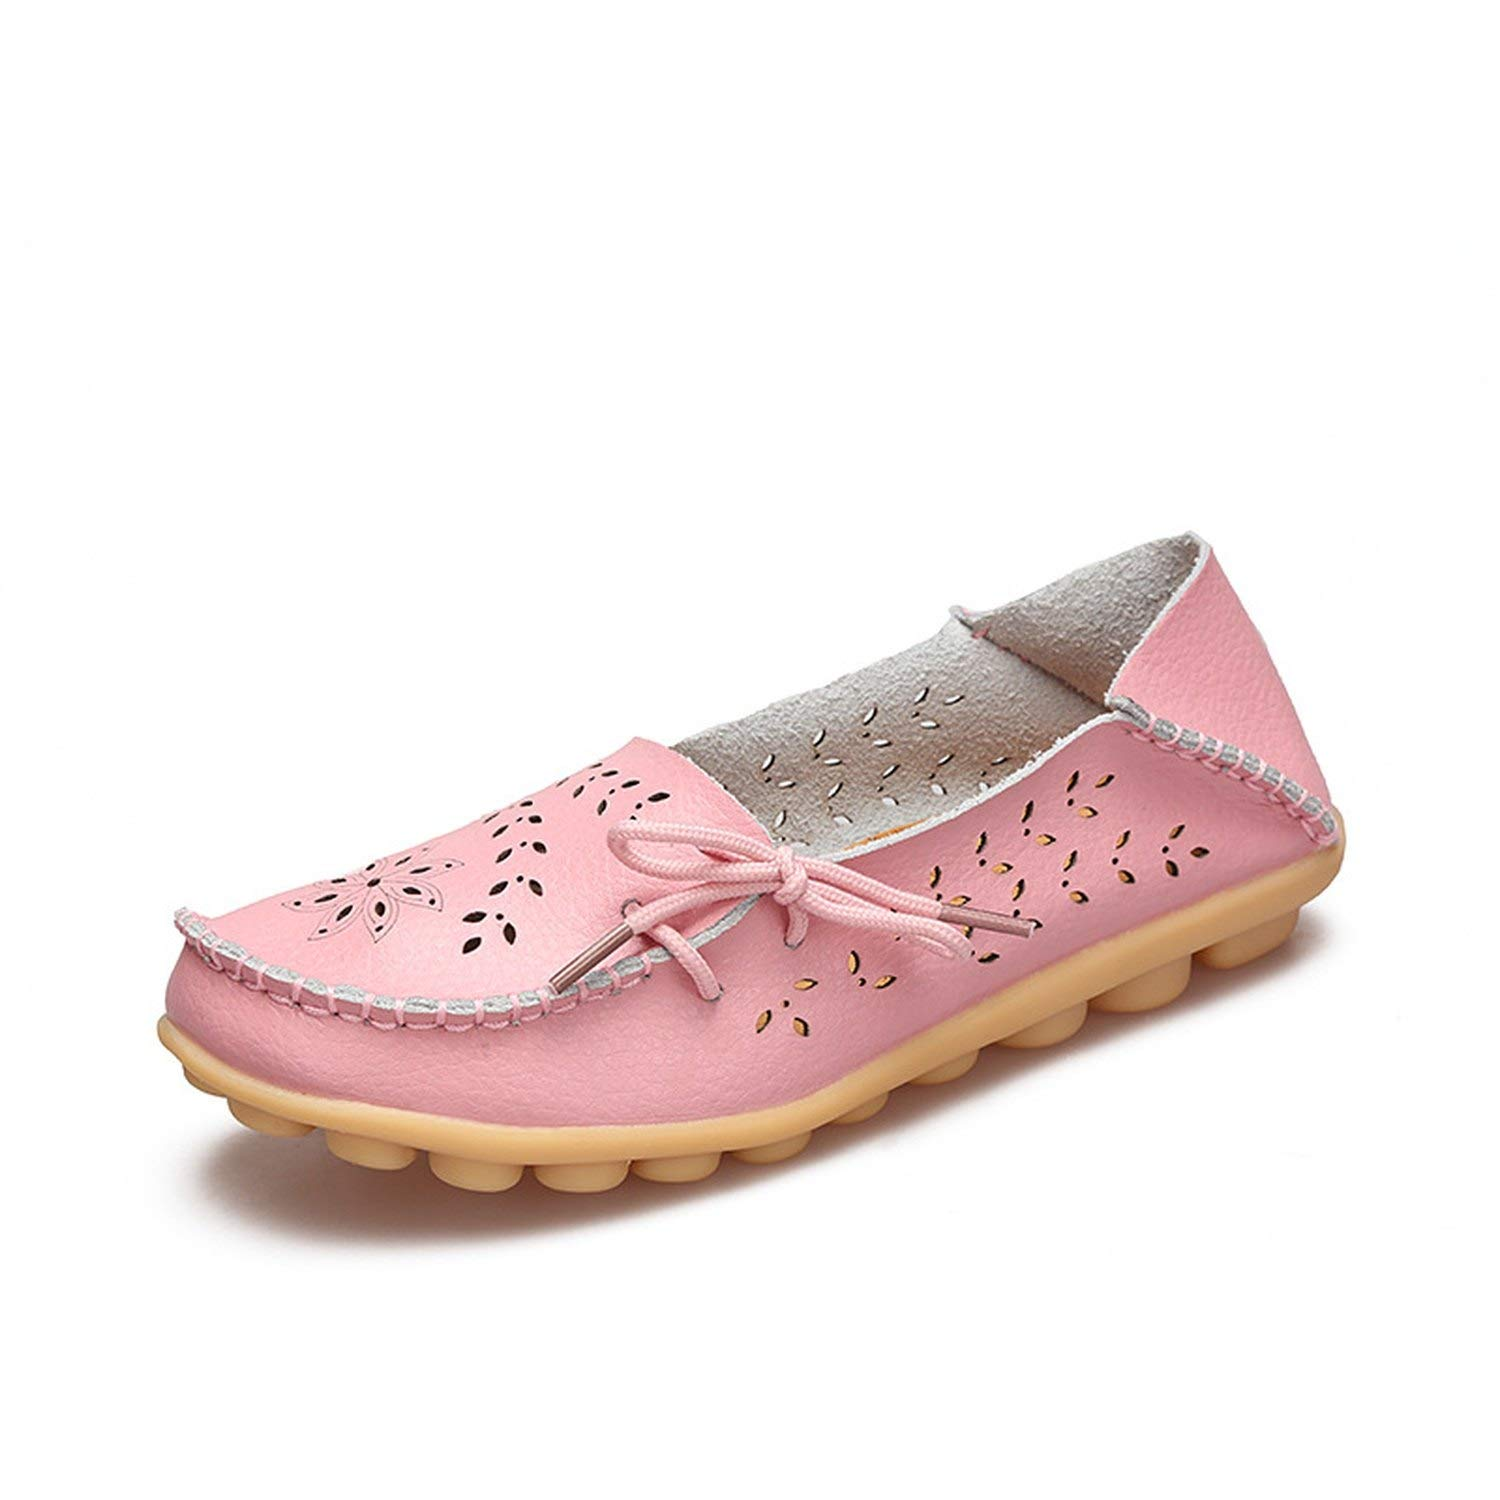 99b1f1d54153 Every kind of beauty Women Flats Comfortable Loafers Women Shoes Slip on Moccasin  Ballet Flats Female Casual Shoes Chaussure Femme Zapatos Mujer 346: ...